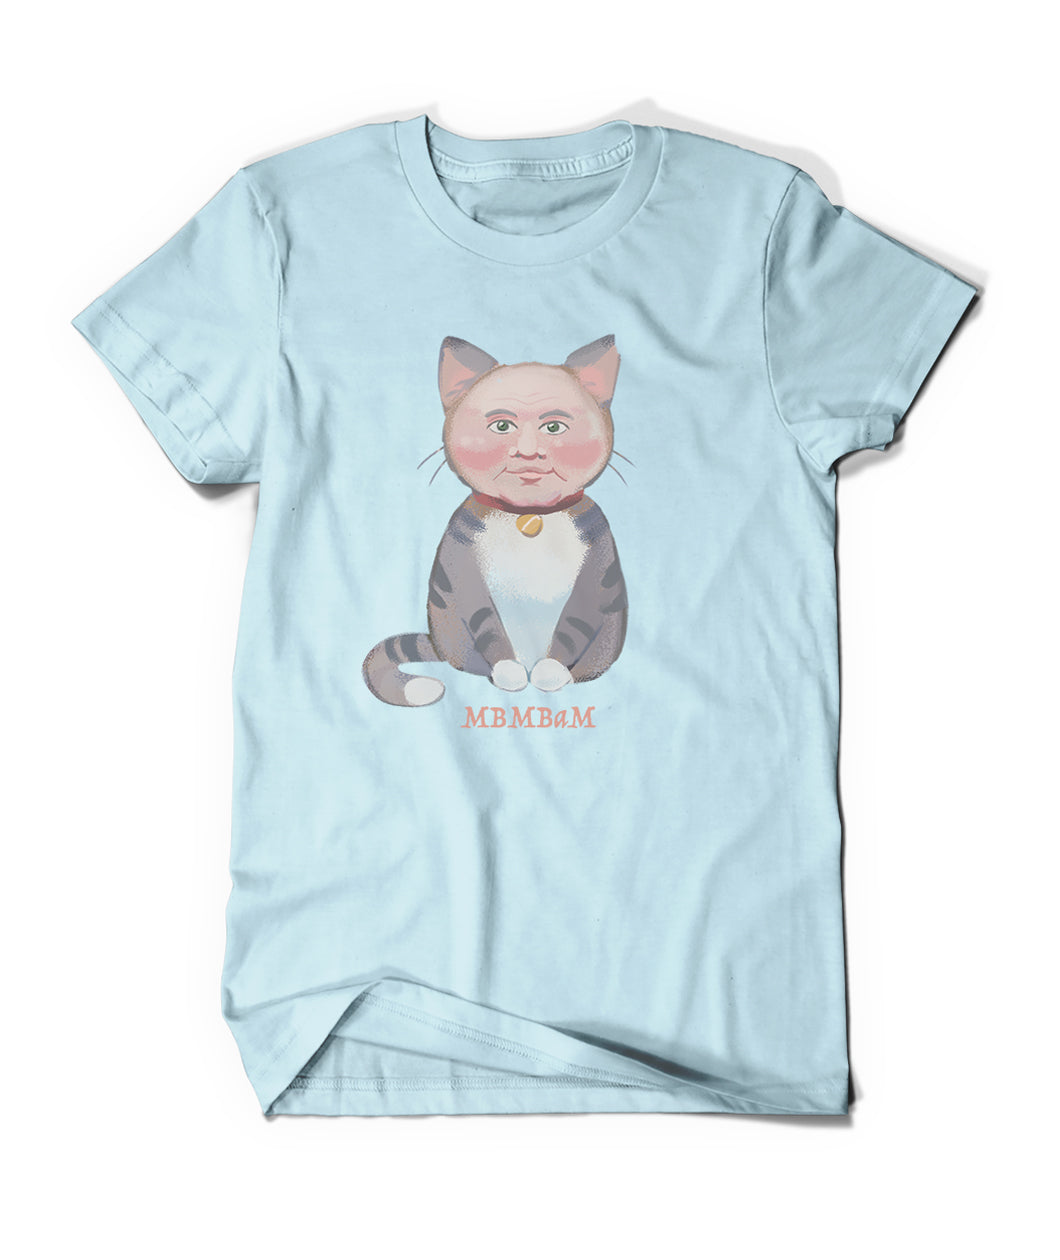 Human Faced Cat Shirt